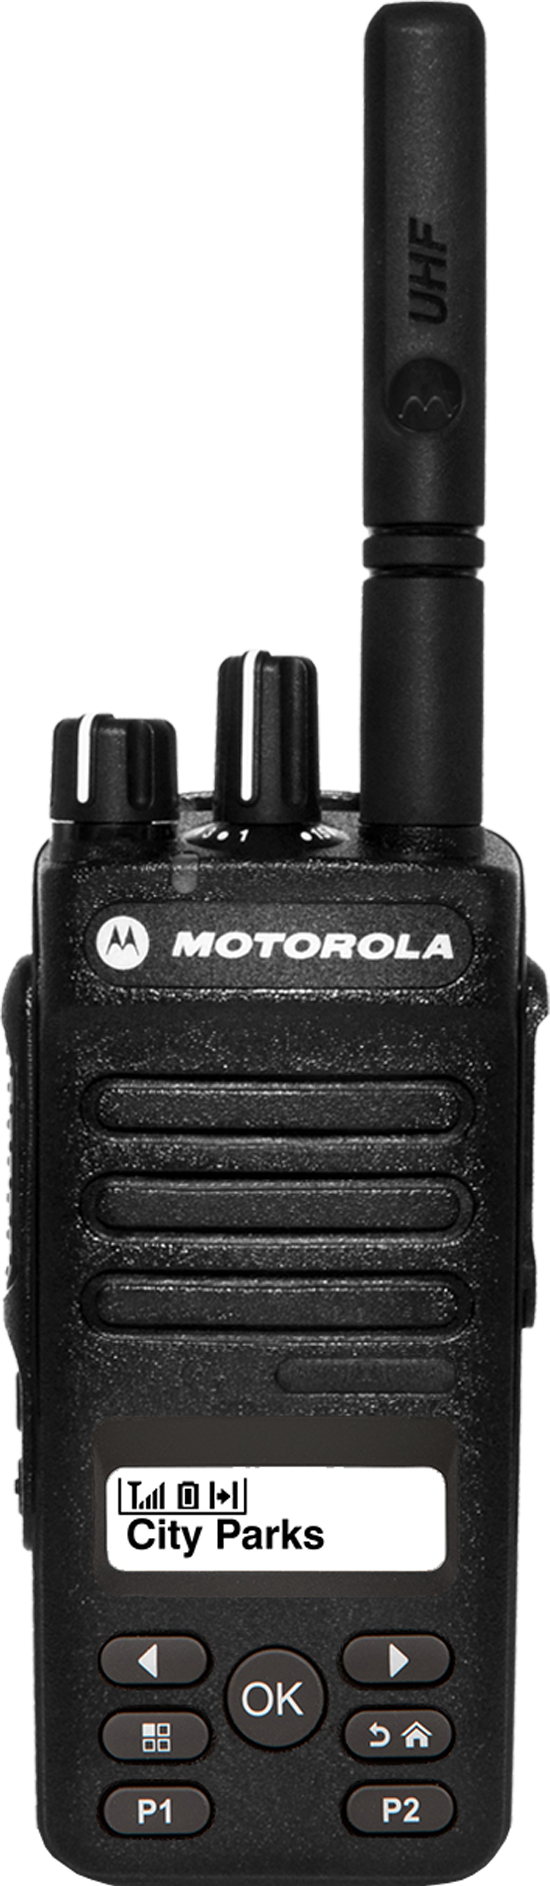 Motorola DP2600e featured image